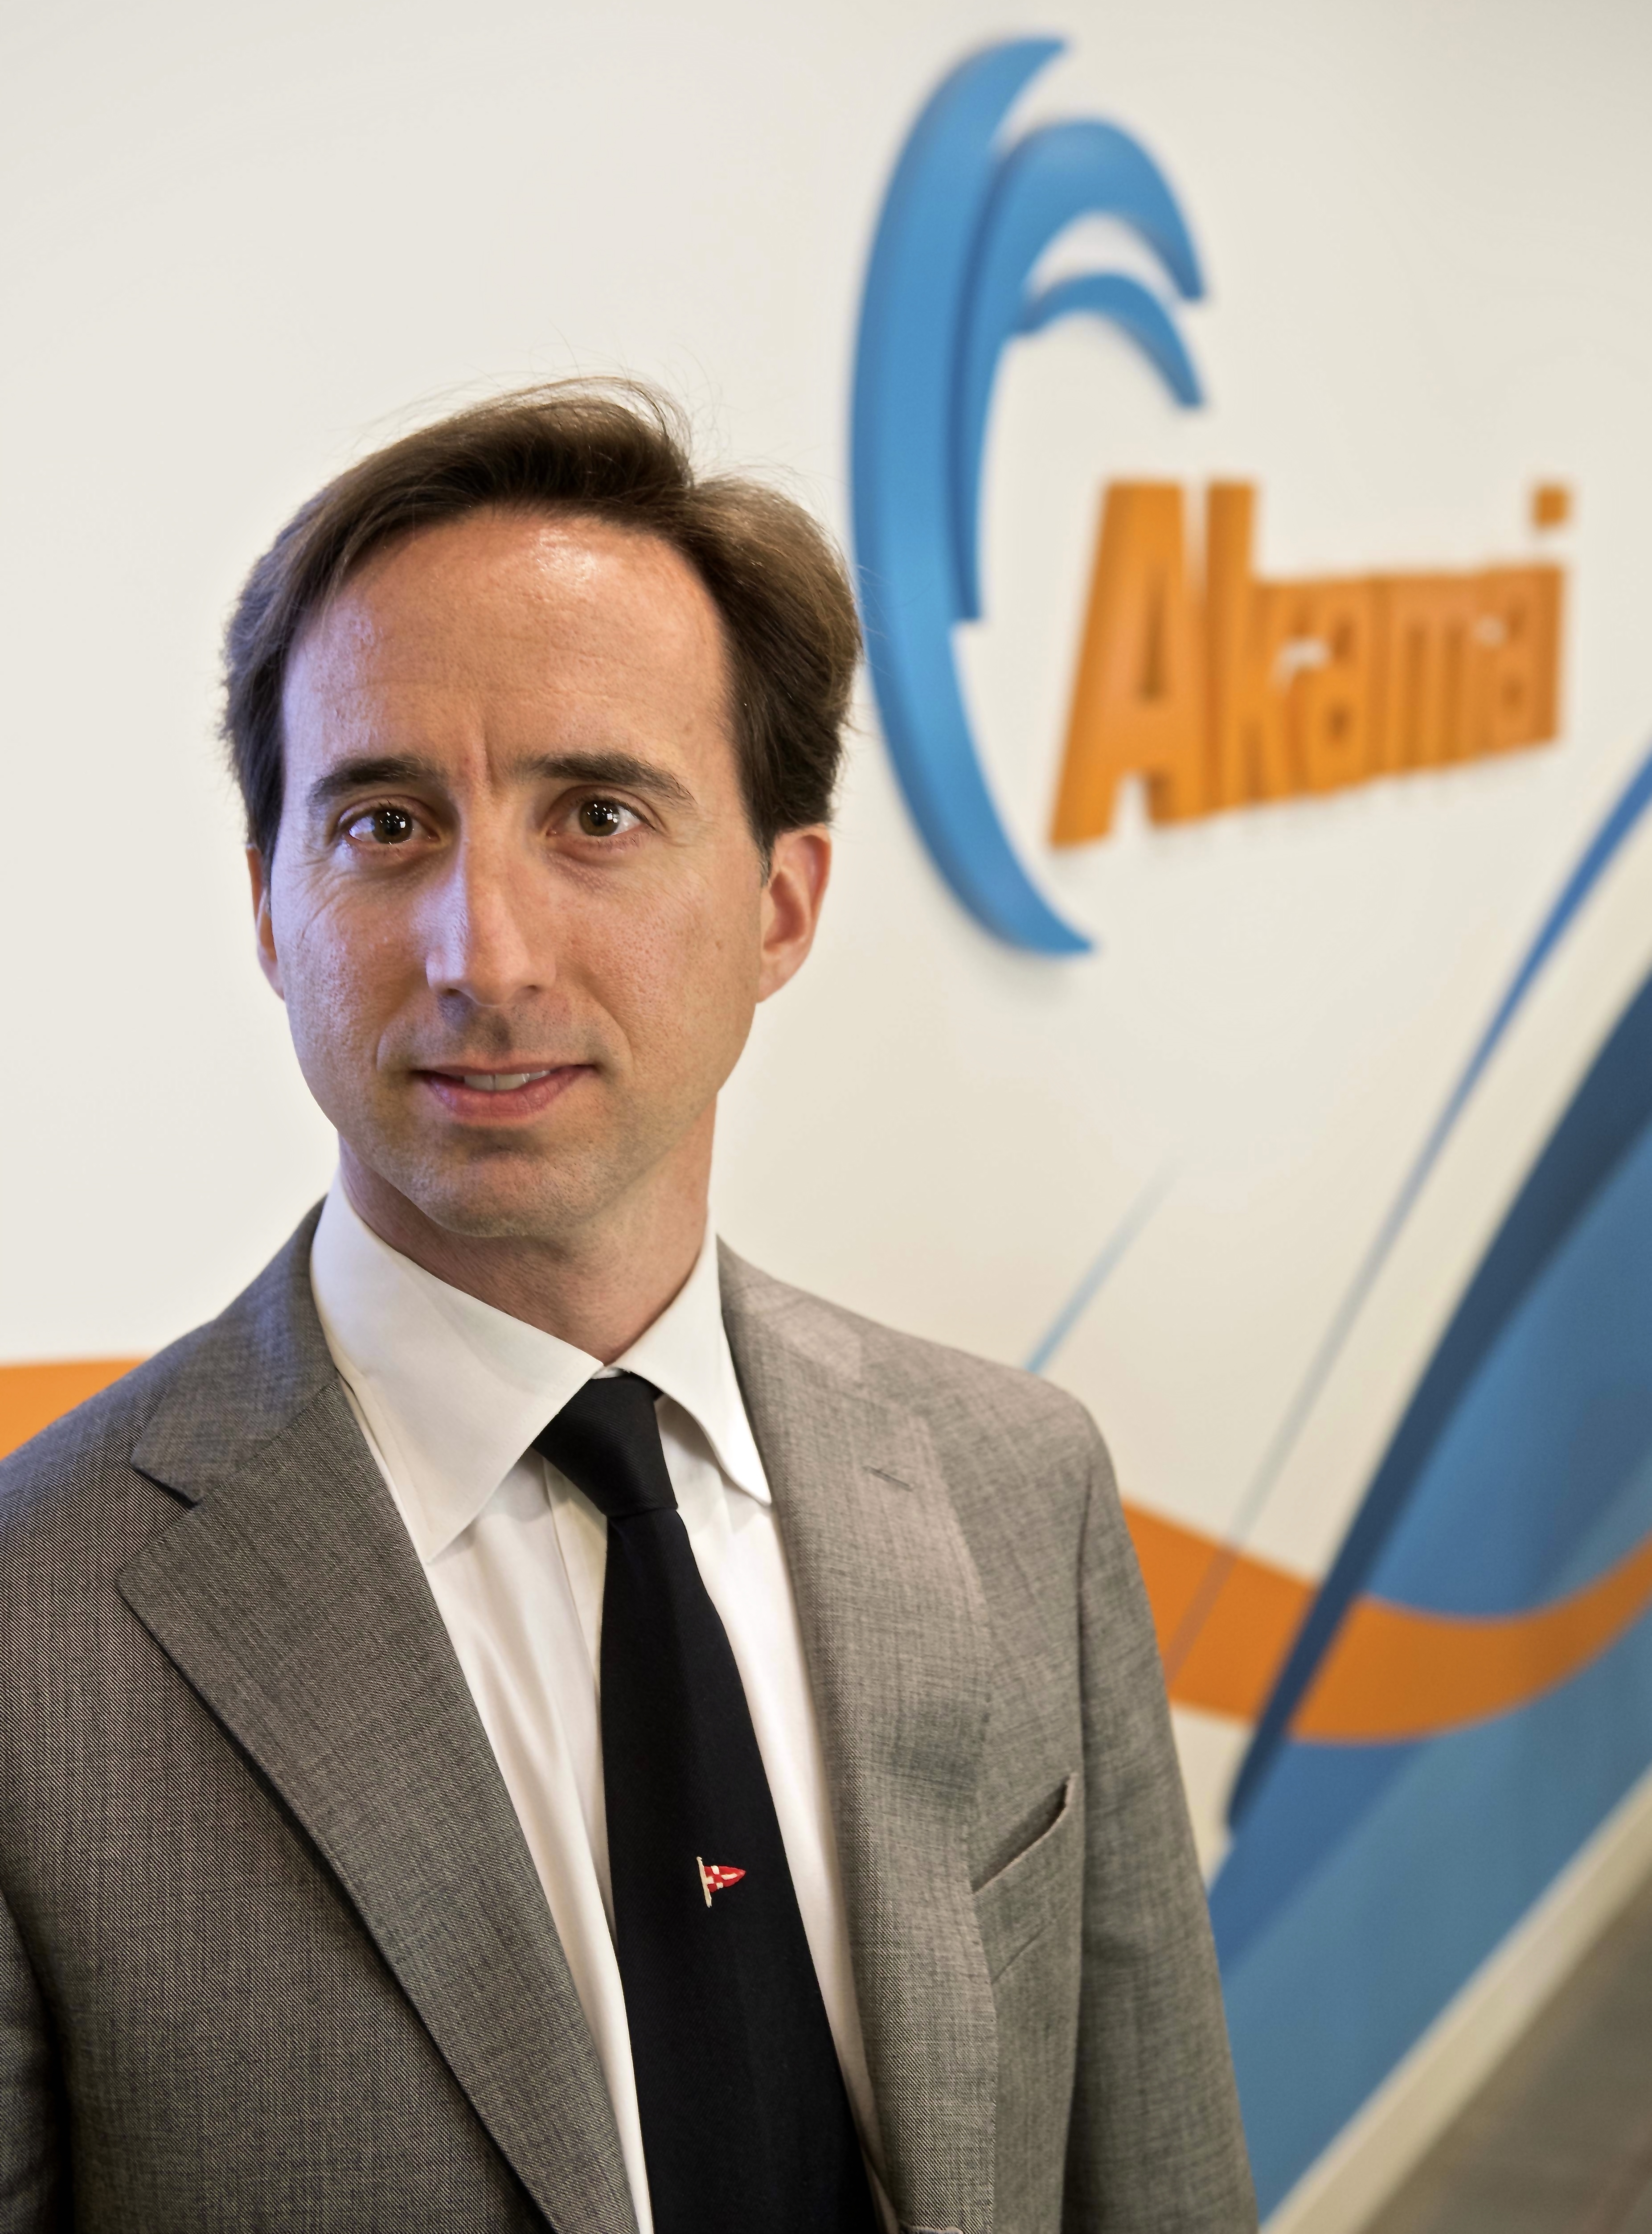 Dida: Alessandro Rivara, Major Account Executive Italy di Akamai Technologies